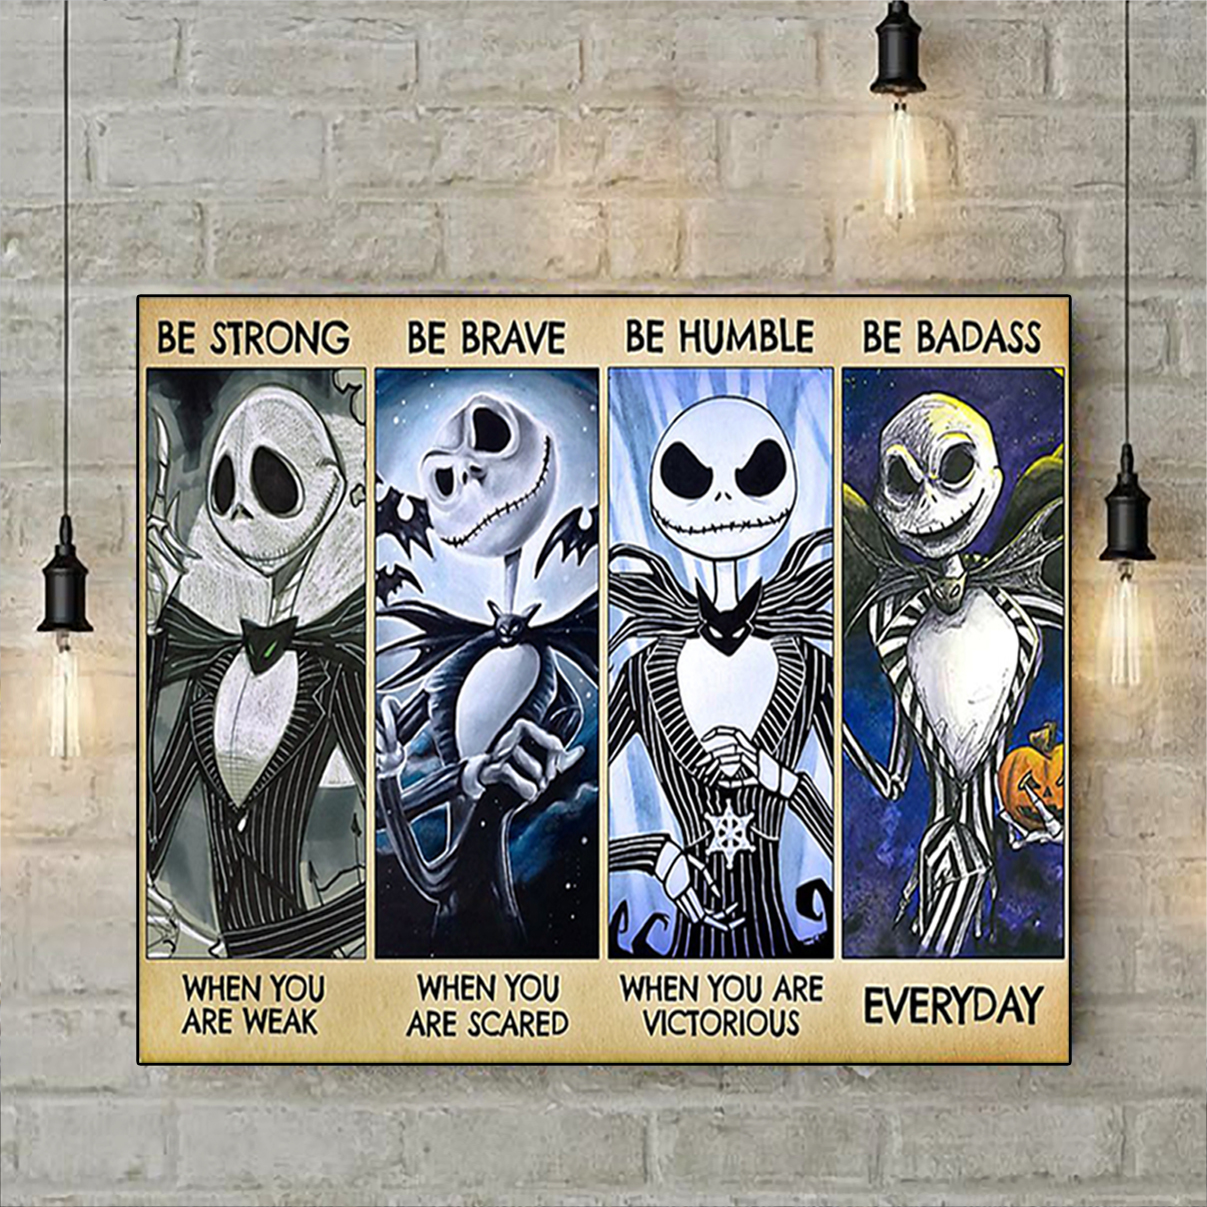 Jack skellington be strong be brave be humble be badass poster A3